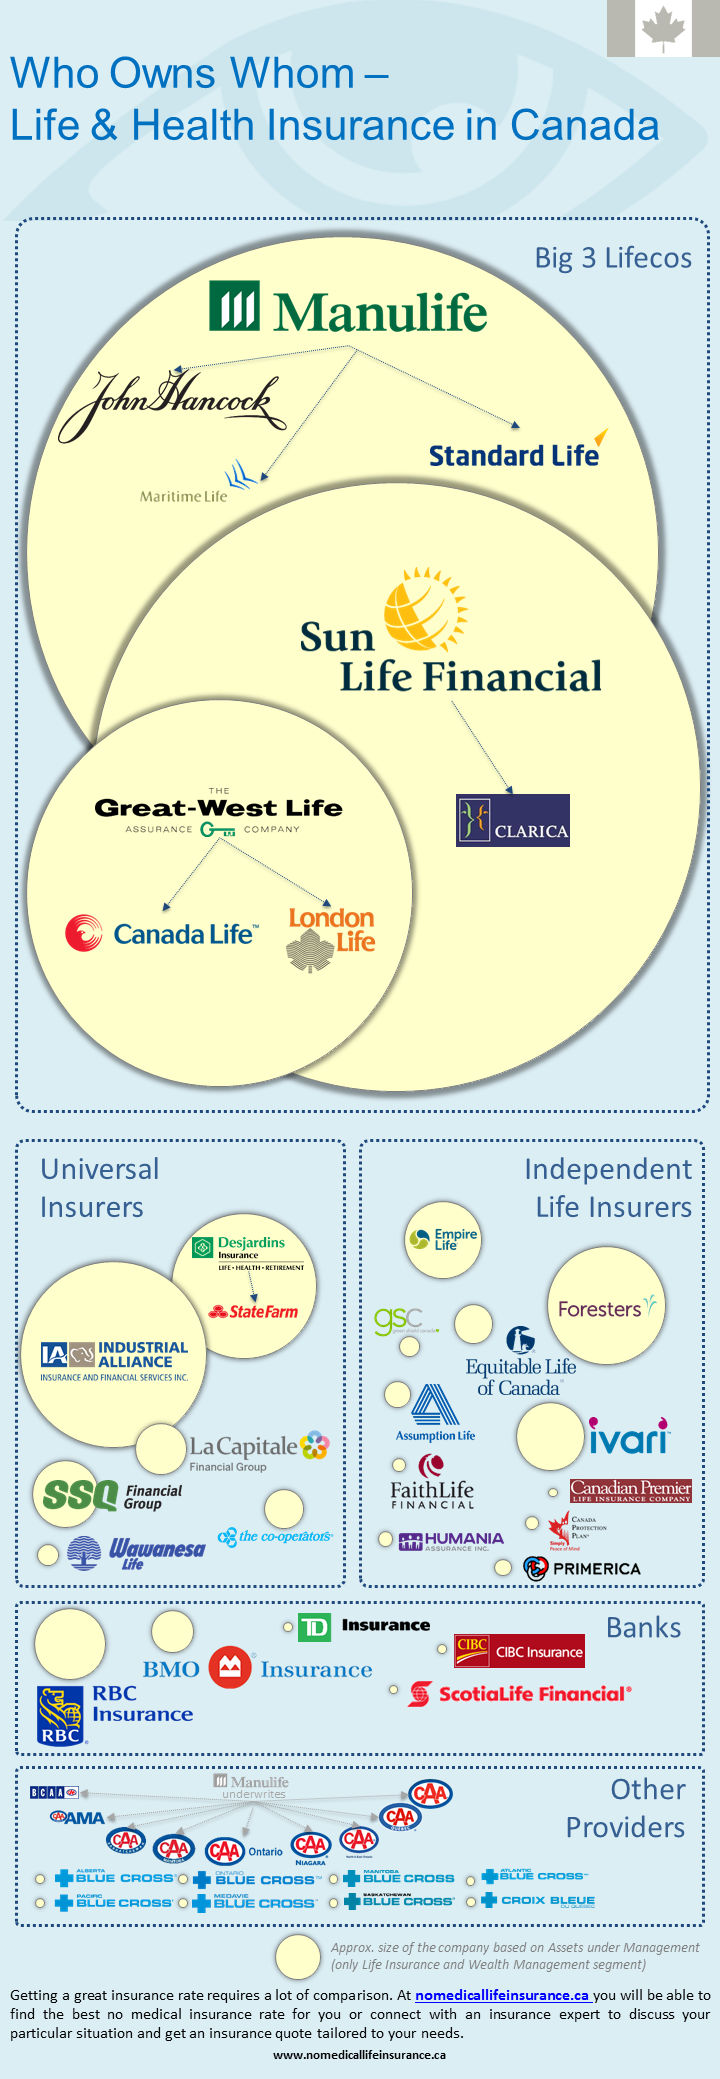 Life Insurance Companies in Canada - Who Owns Whom